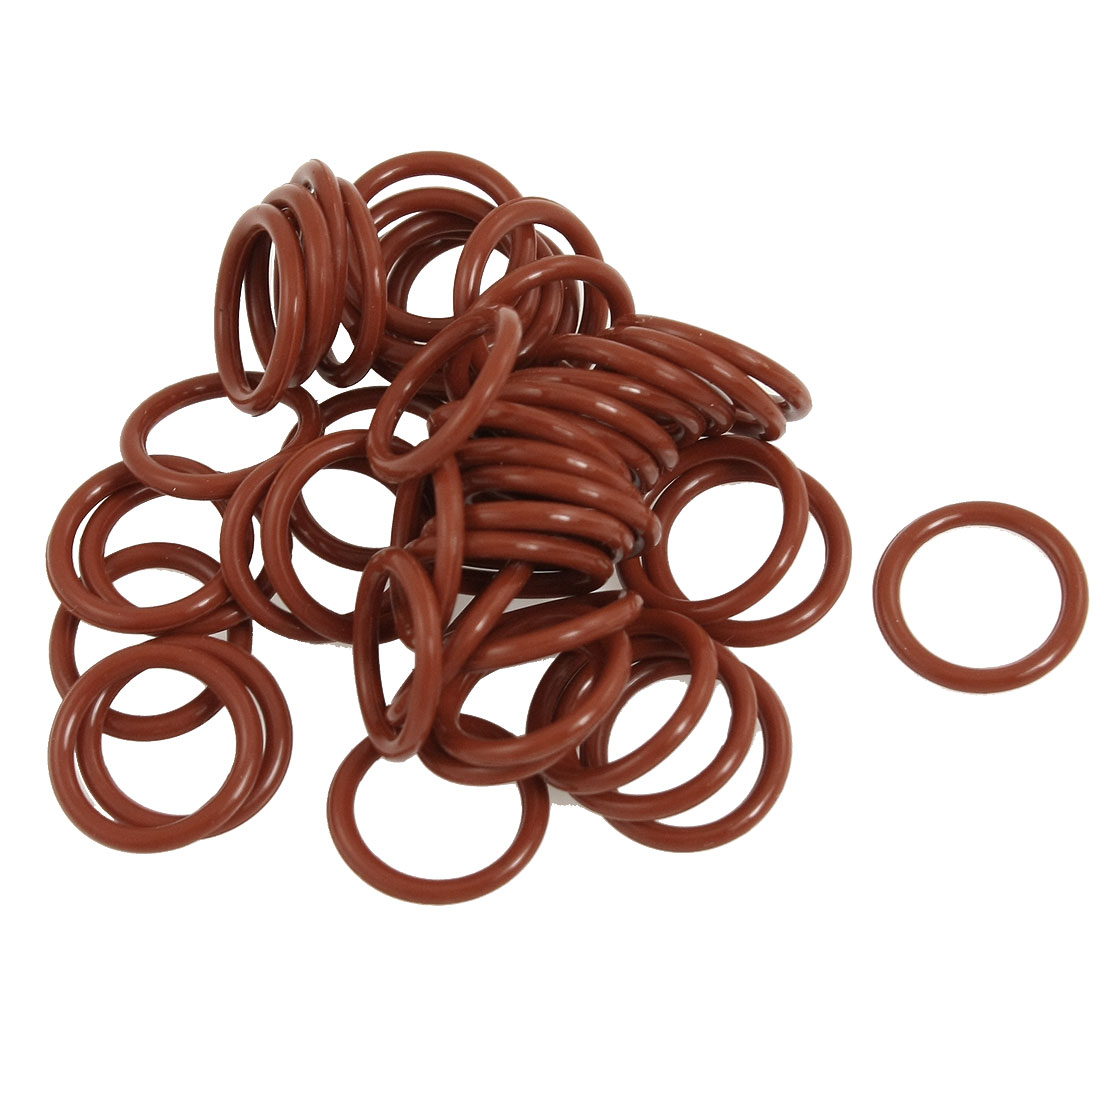 50 Pcs 16mm Outside Dia. 2mm Thickness Red Silicone O Ring Oil Seals